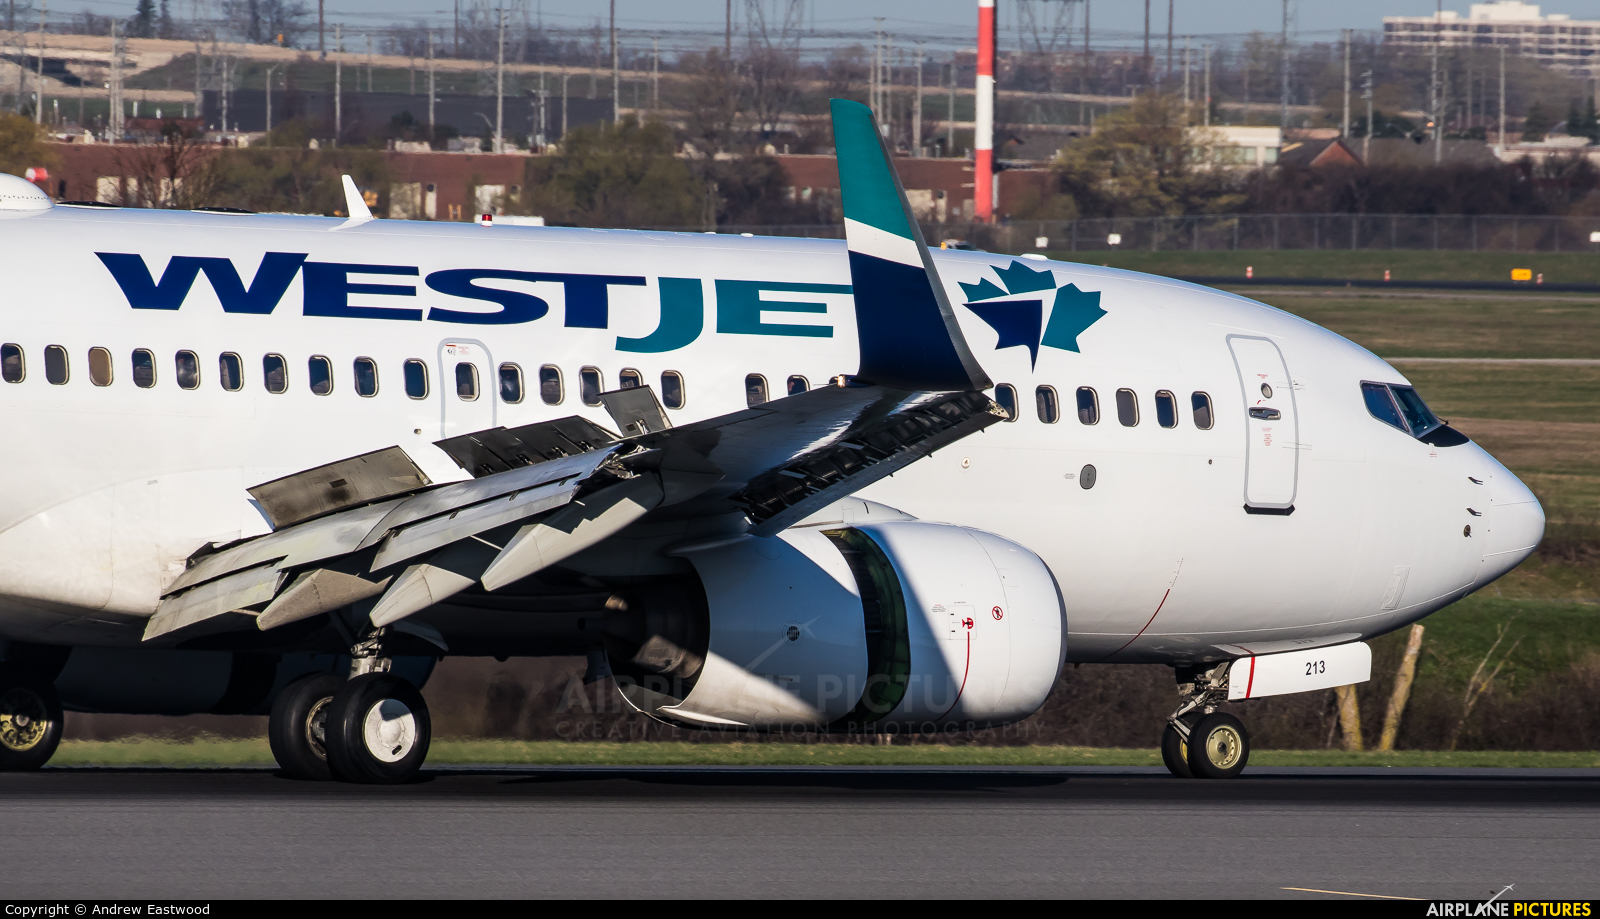 WestJet Airlines C-GWBF aircraft at Toronto - Pearson Intl, ON